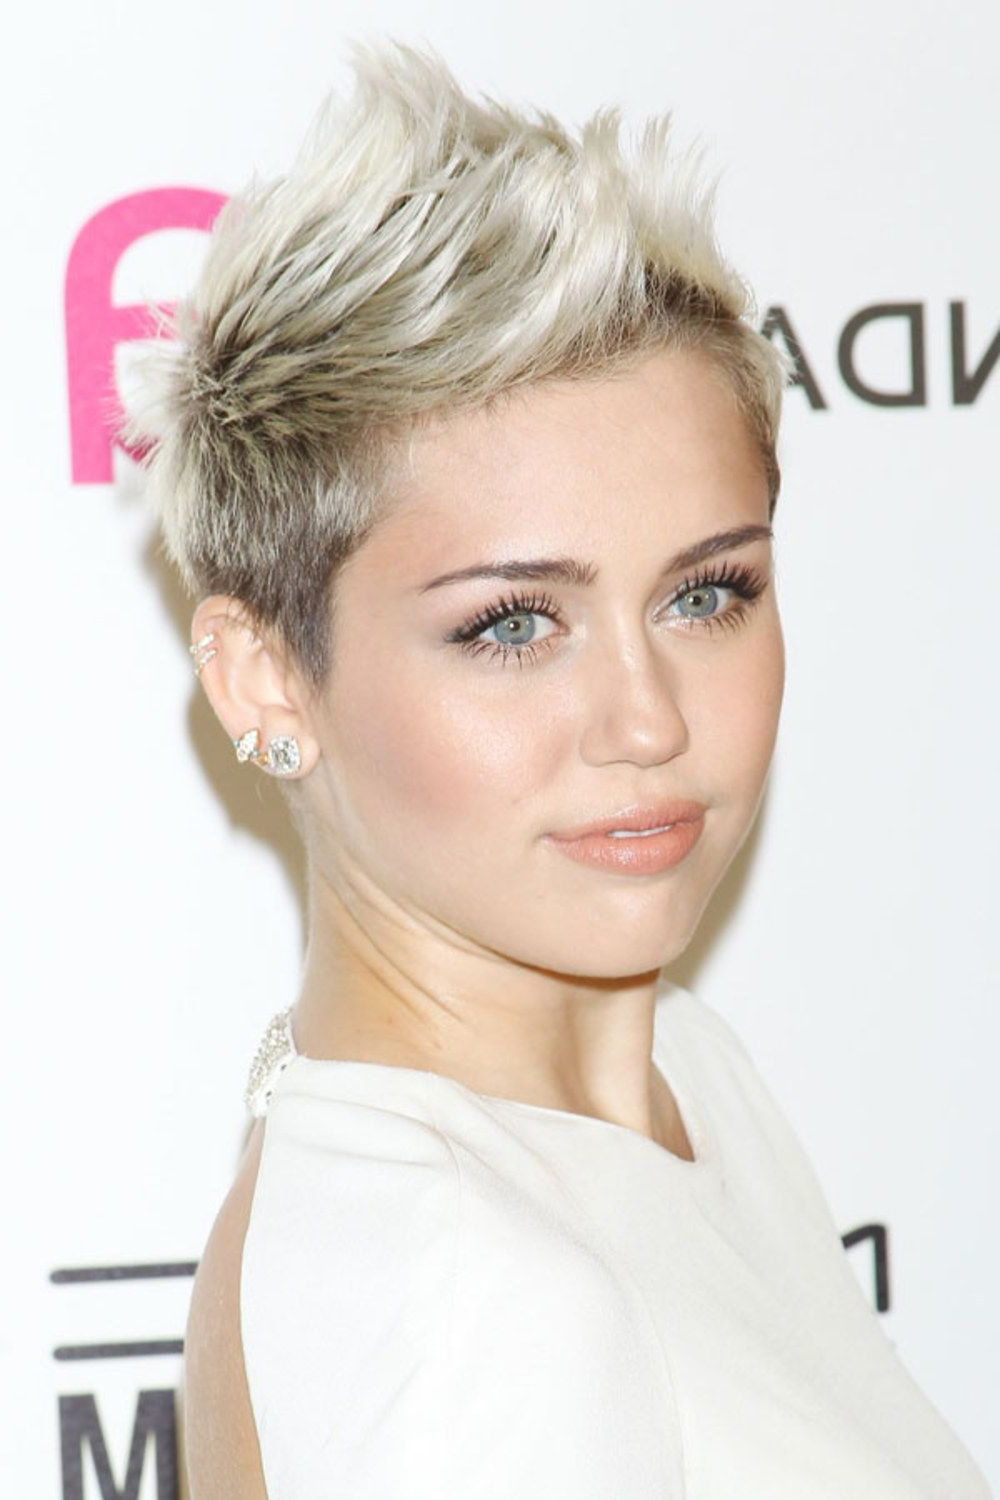 Miley Cyrus Reveals Yet Another Image Overhaul With New Mop Haircut Throughout Miley Cyrus Short Hairstyles (View 8 of 25)